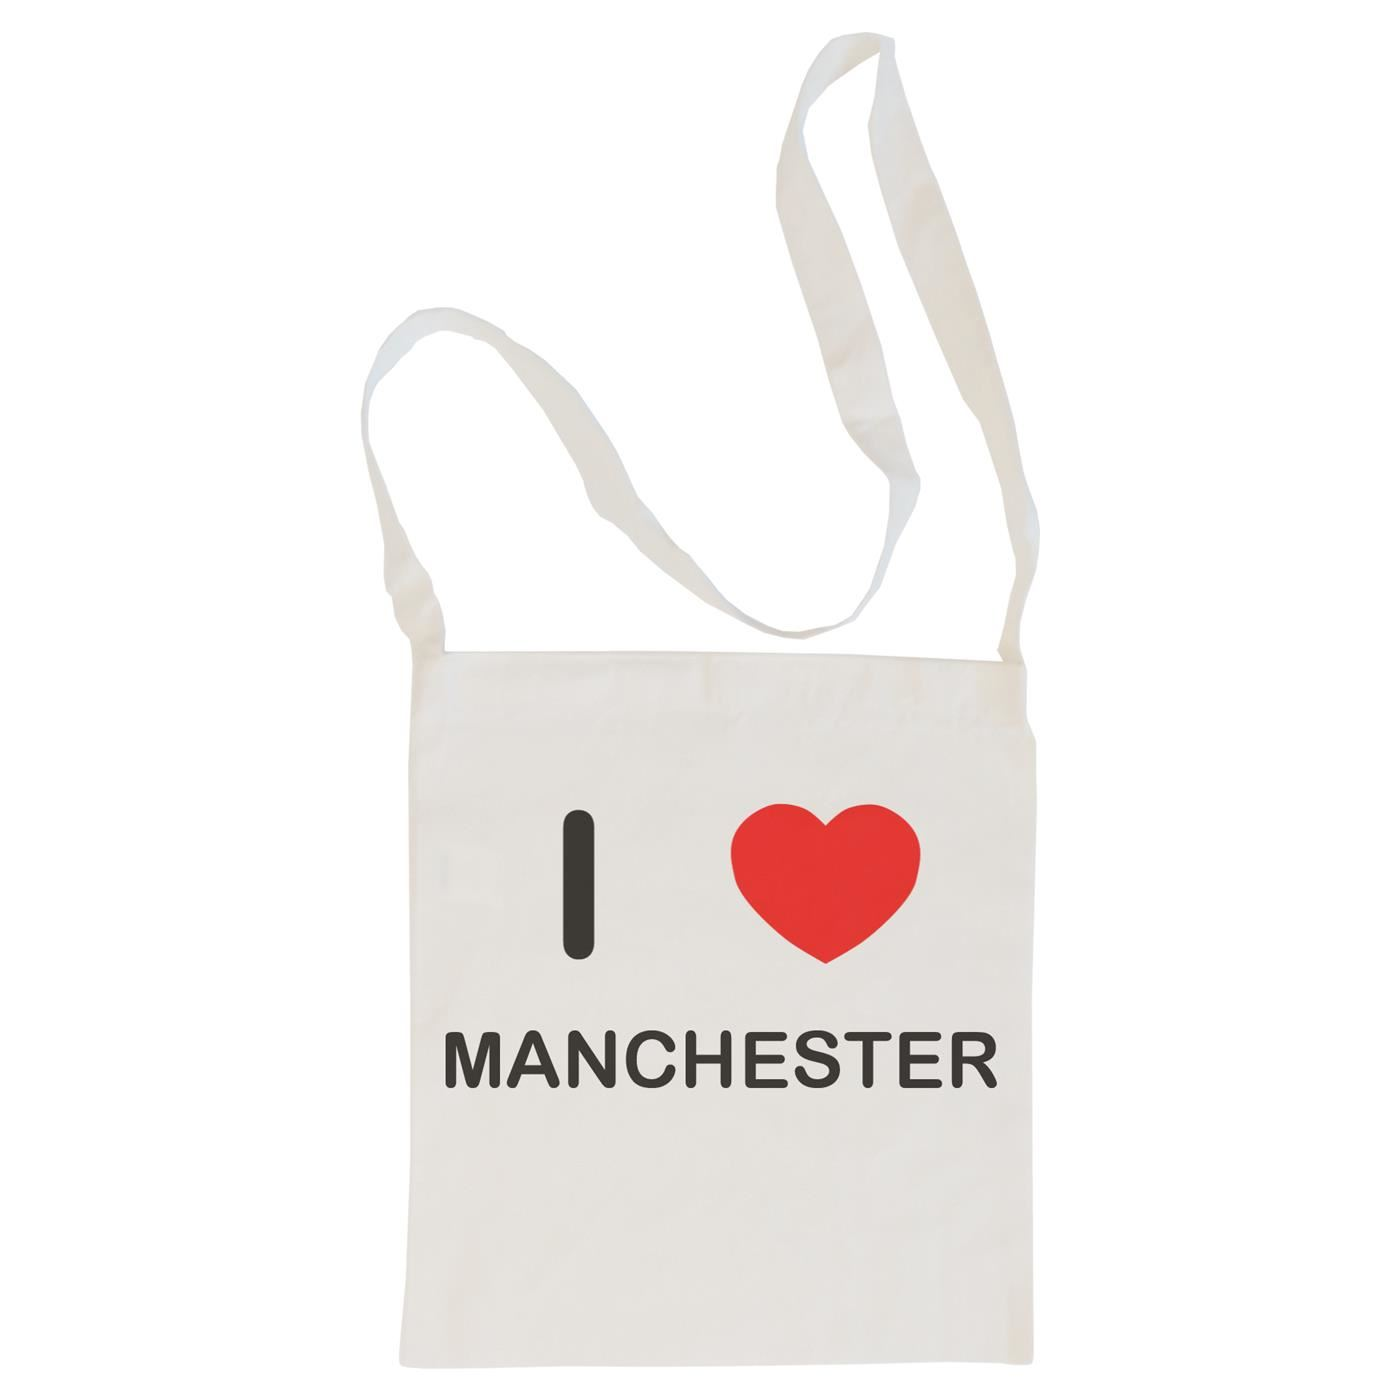 I Love Manchester - Cotton Bag | Size choice Tote, Shopper or Sling